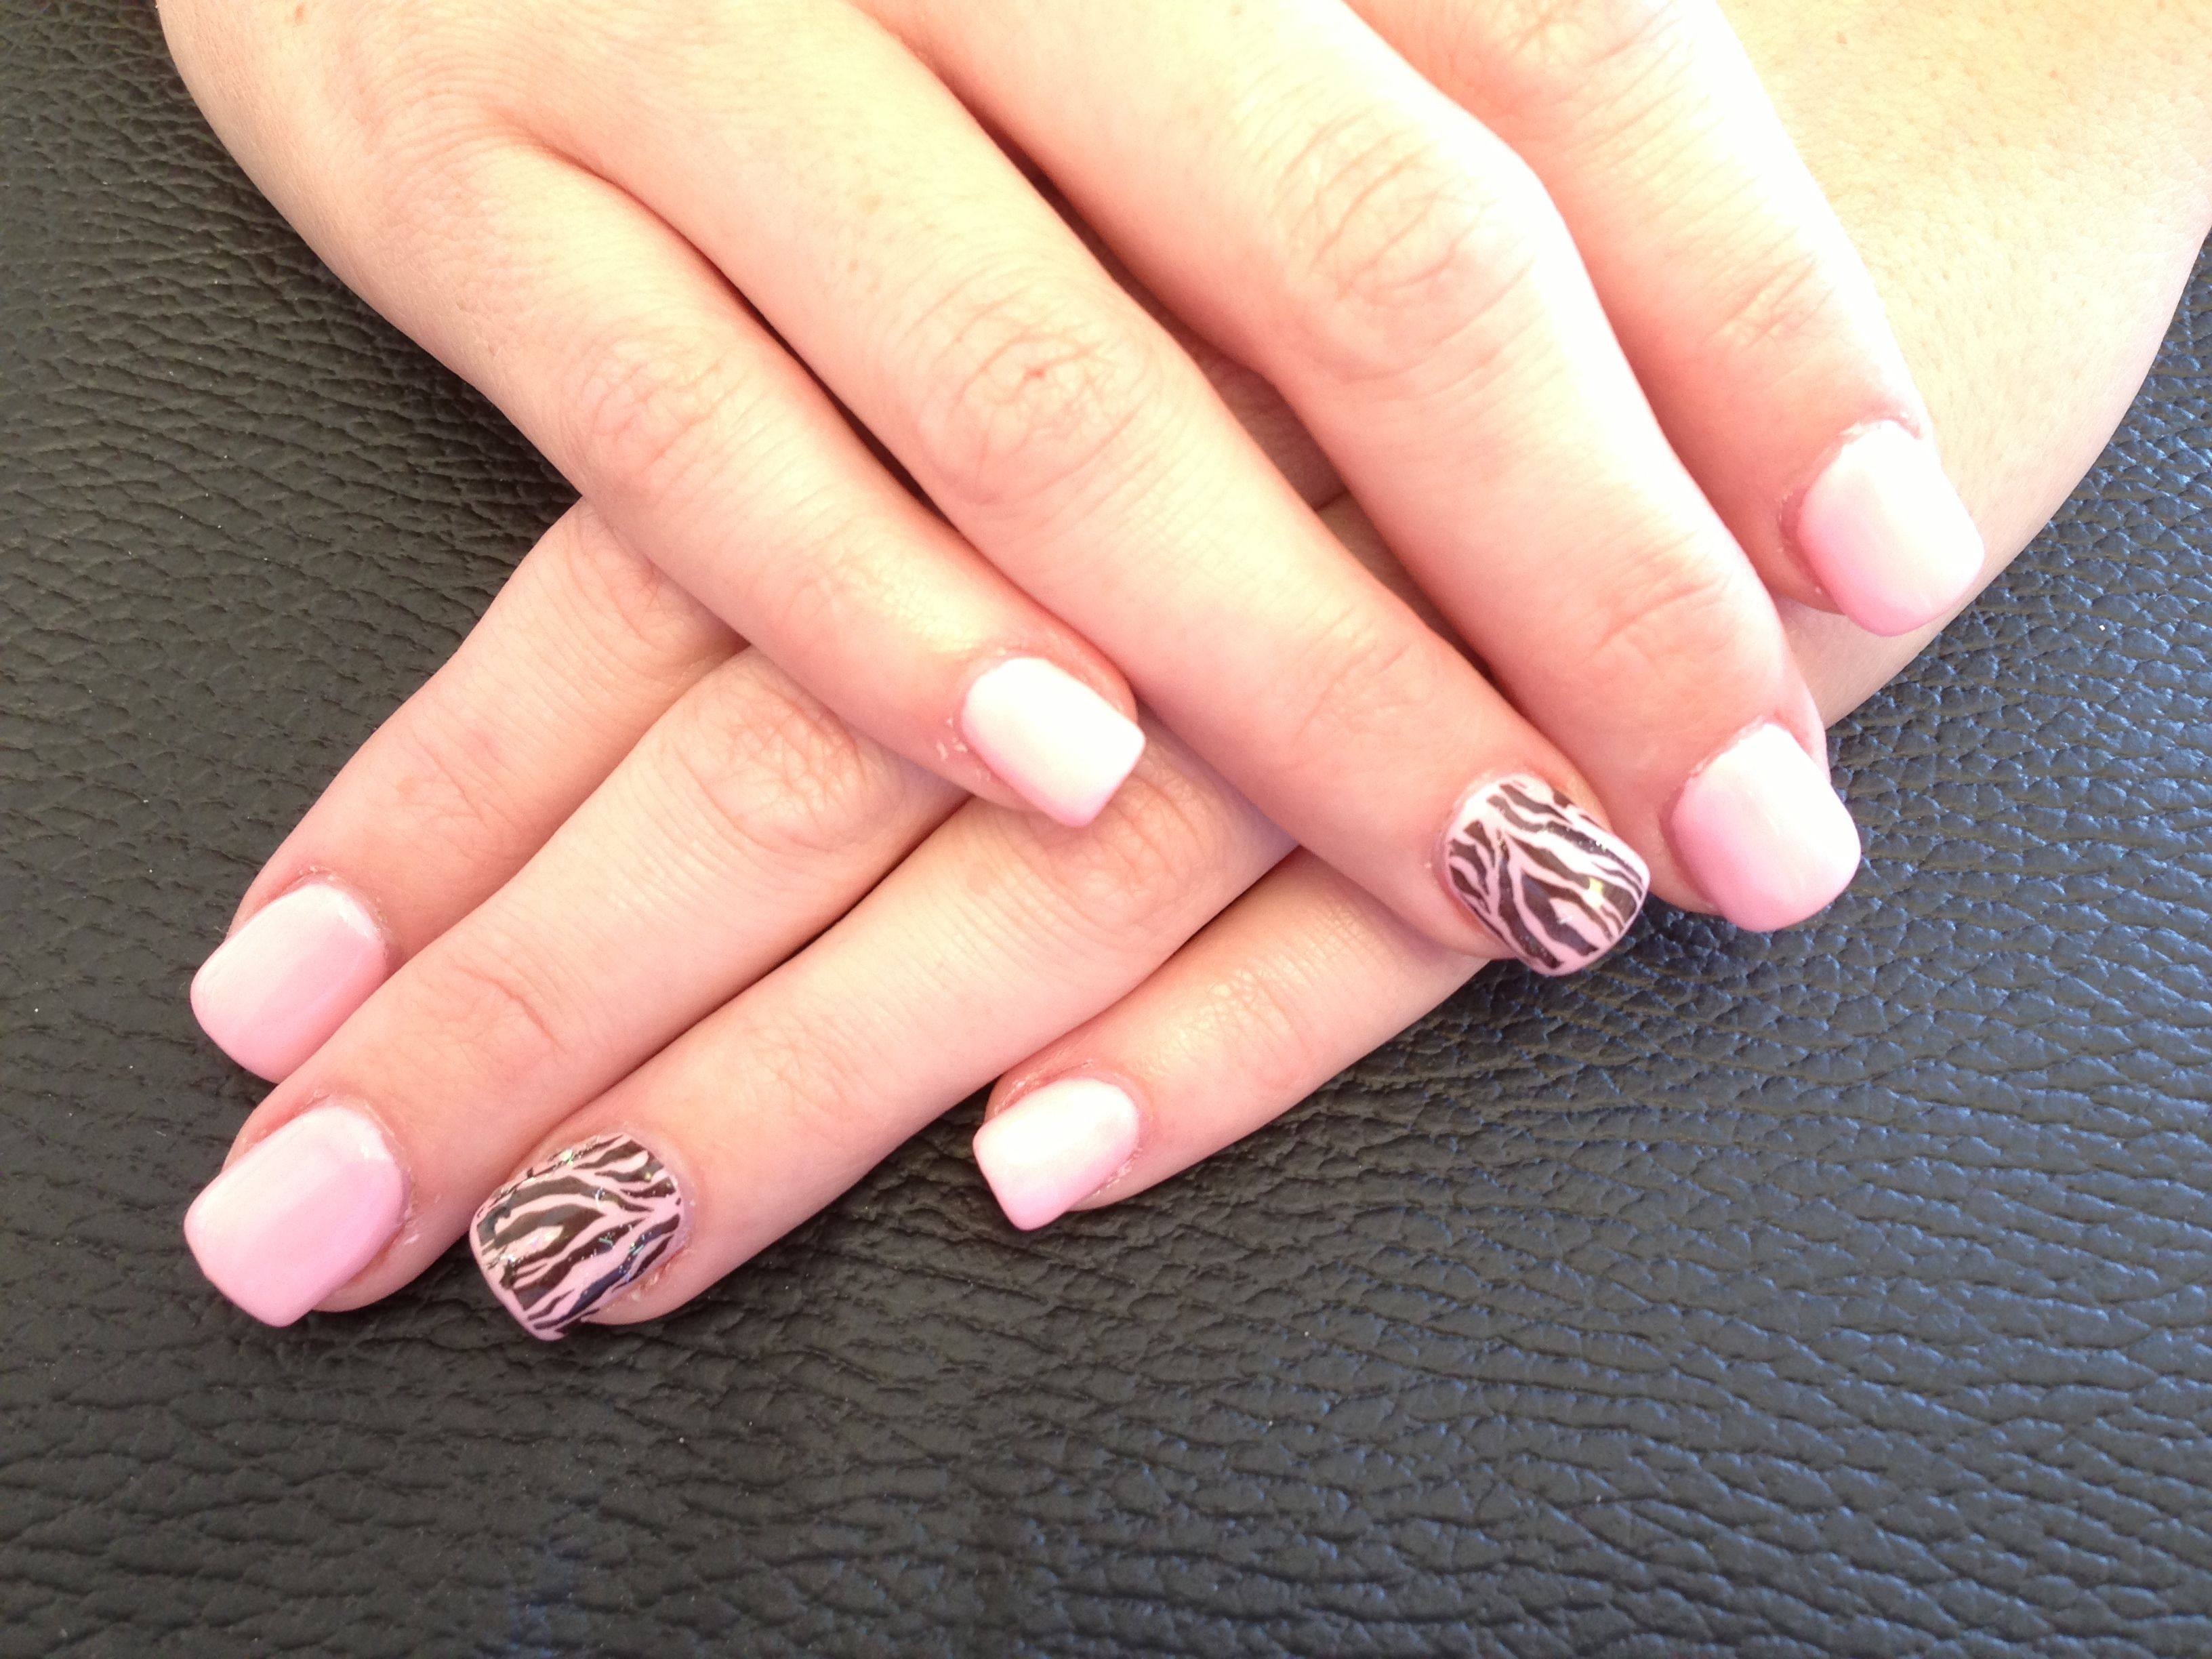 We Are Love Doing Nails Art Ivnailsandspa Nails Art